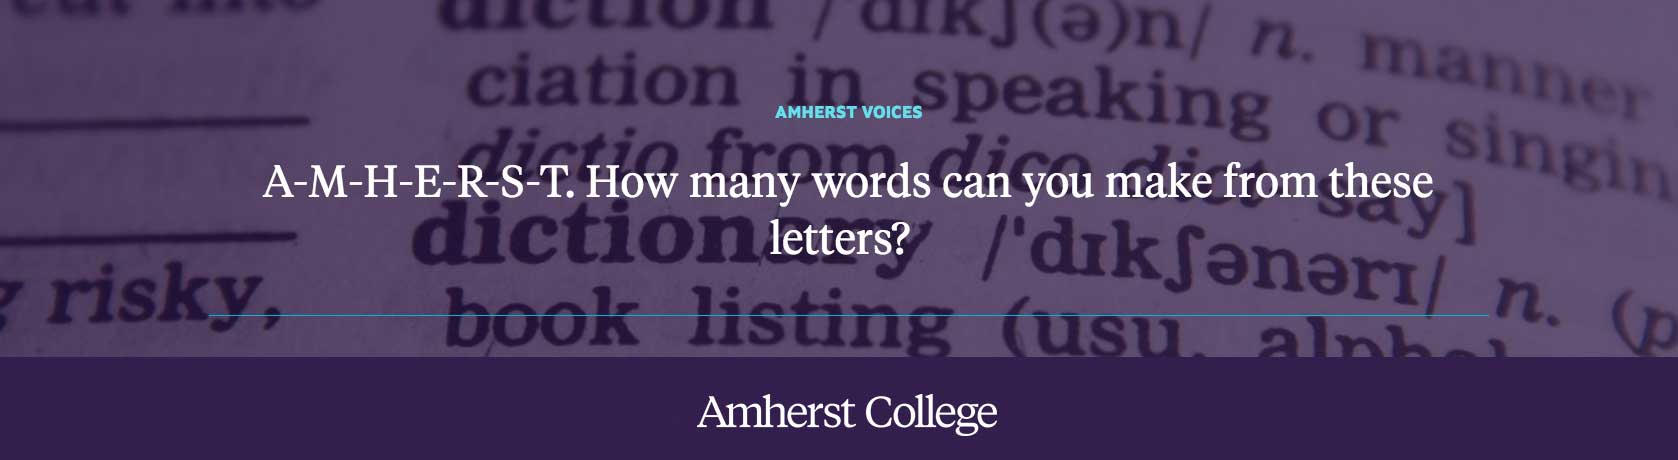 How many words can you make from these letters? A-M-H-E-R-S-T